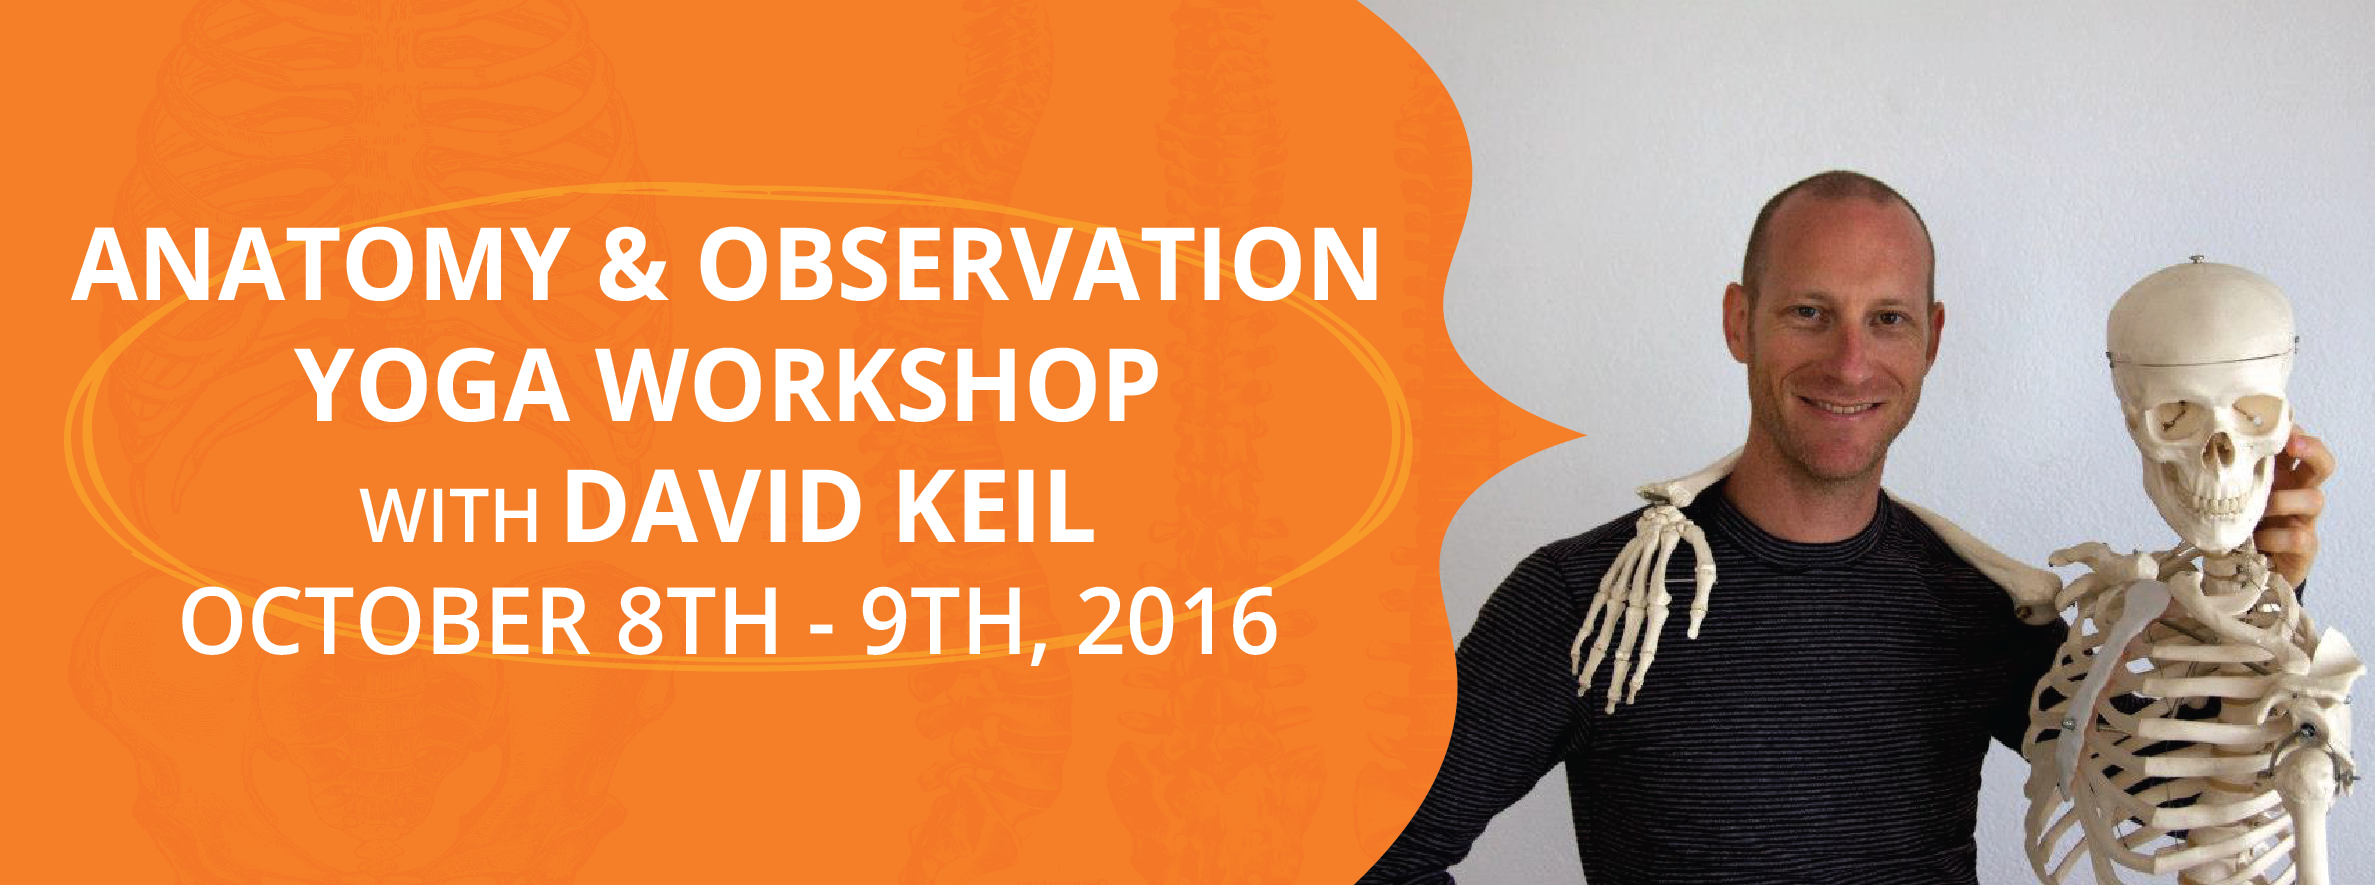 Anatomy & Observation Yoga Workshop